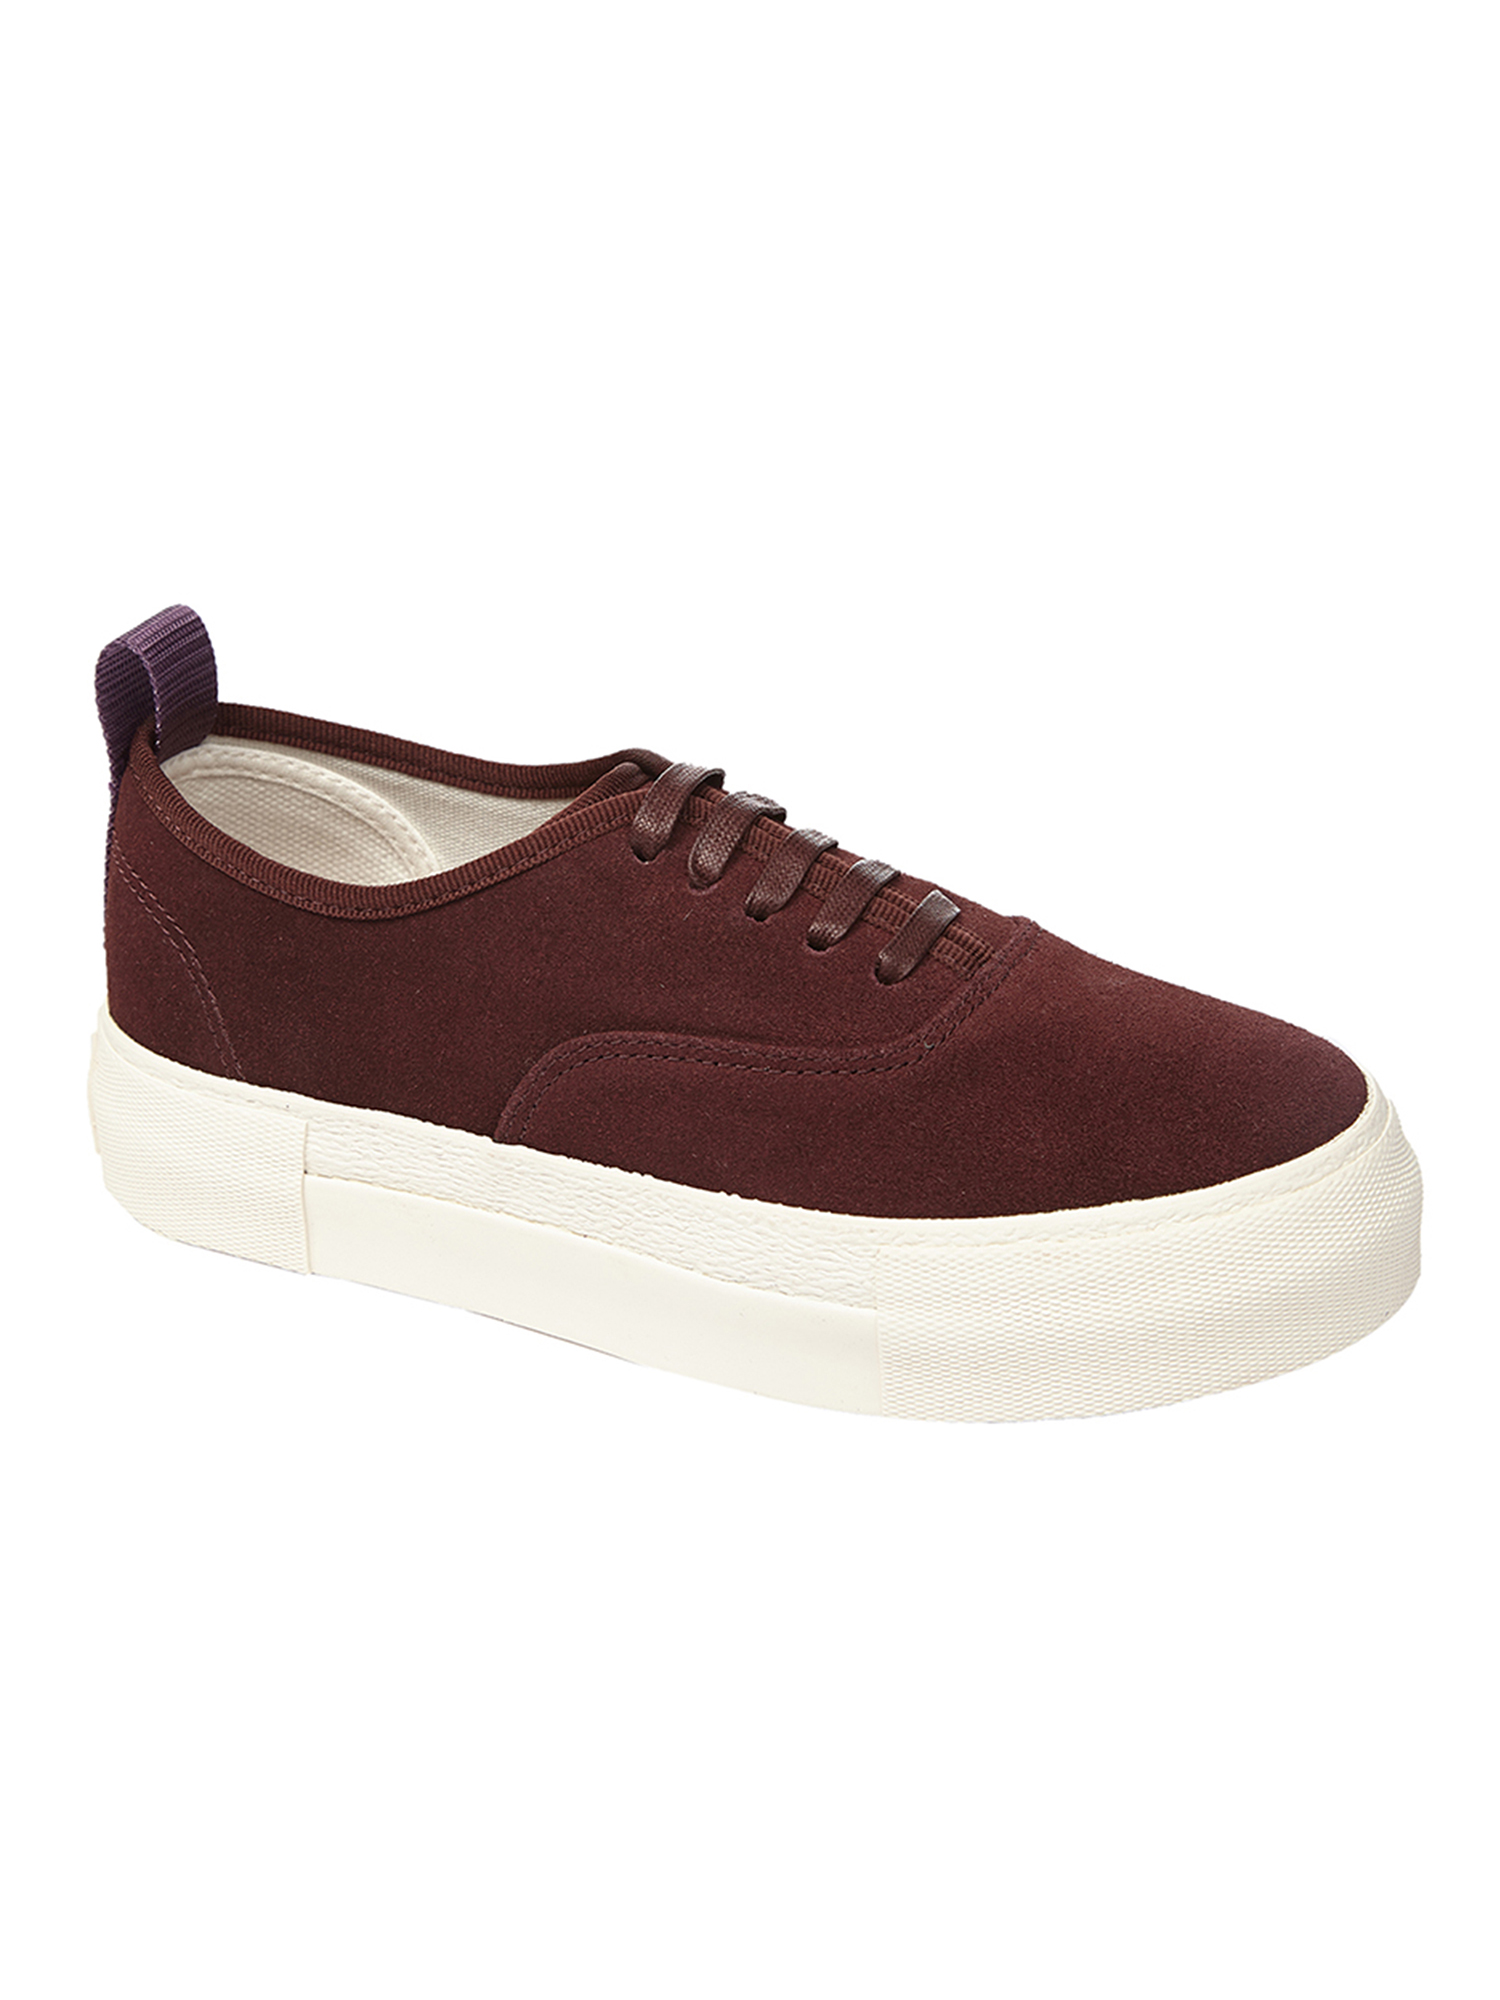 Eytys Mother Suede Fashion Sneakers MOTHERSUEDE